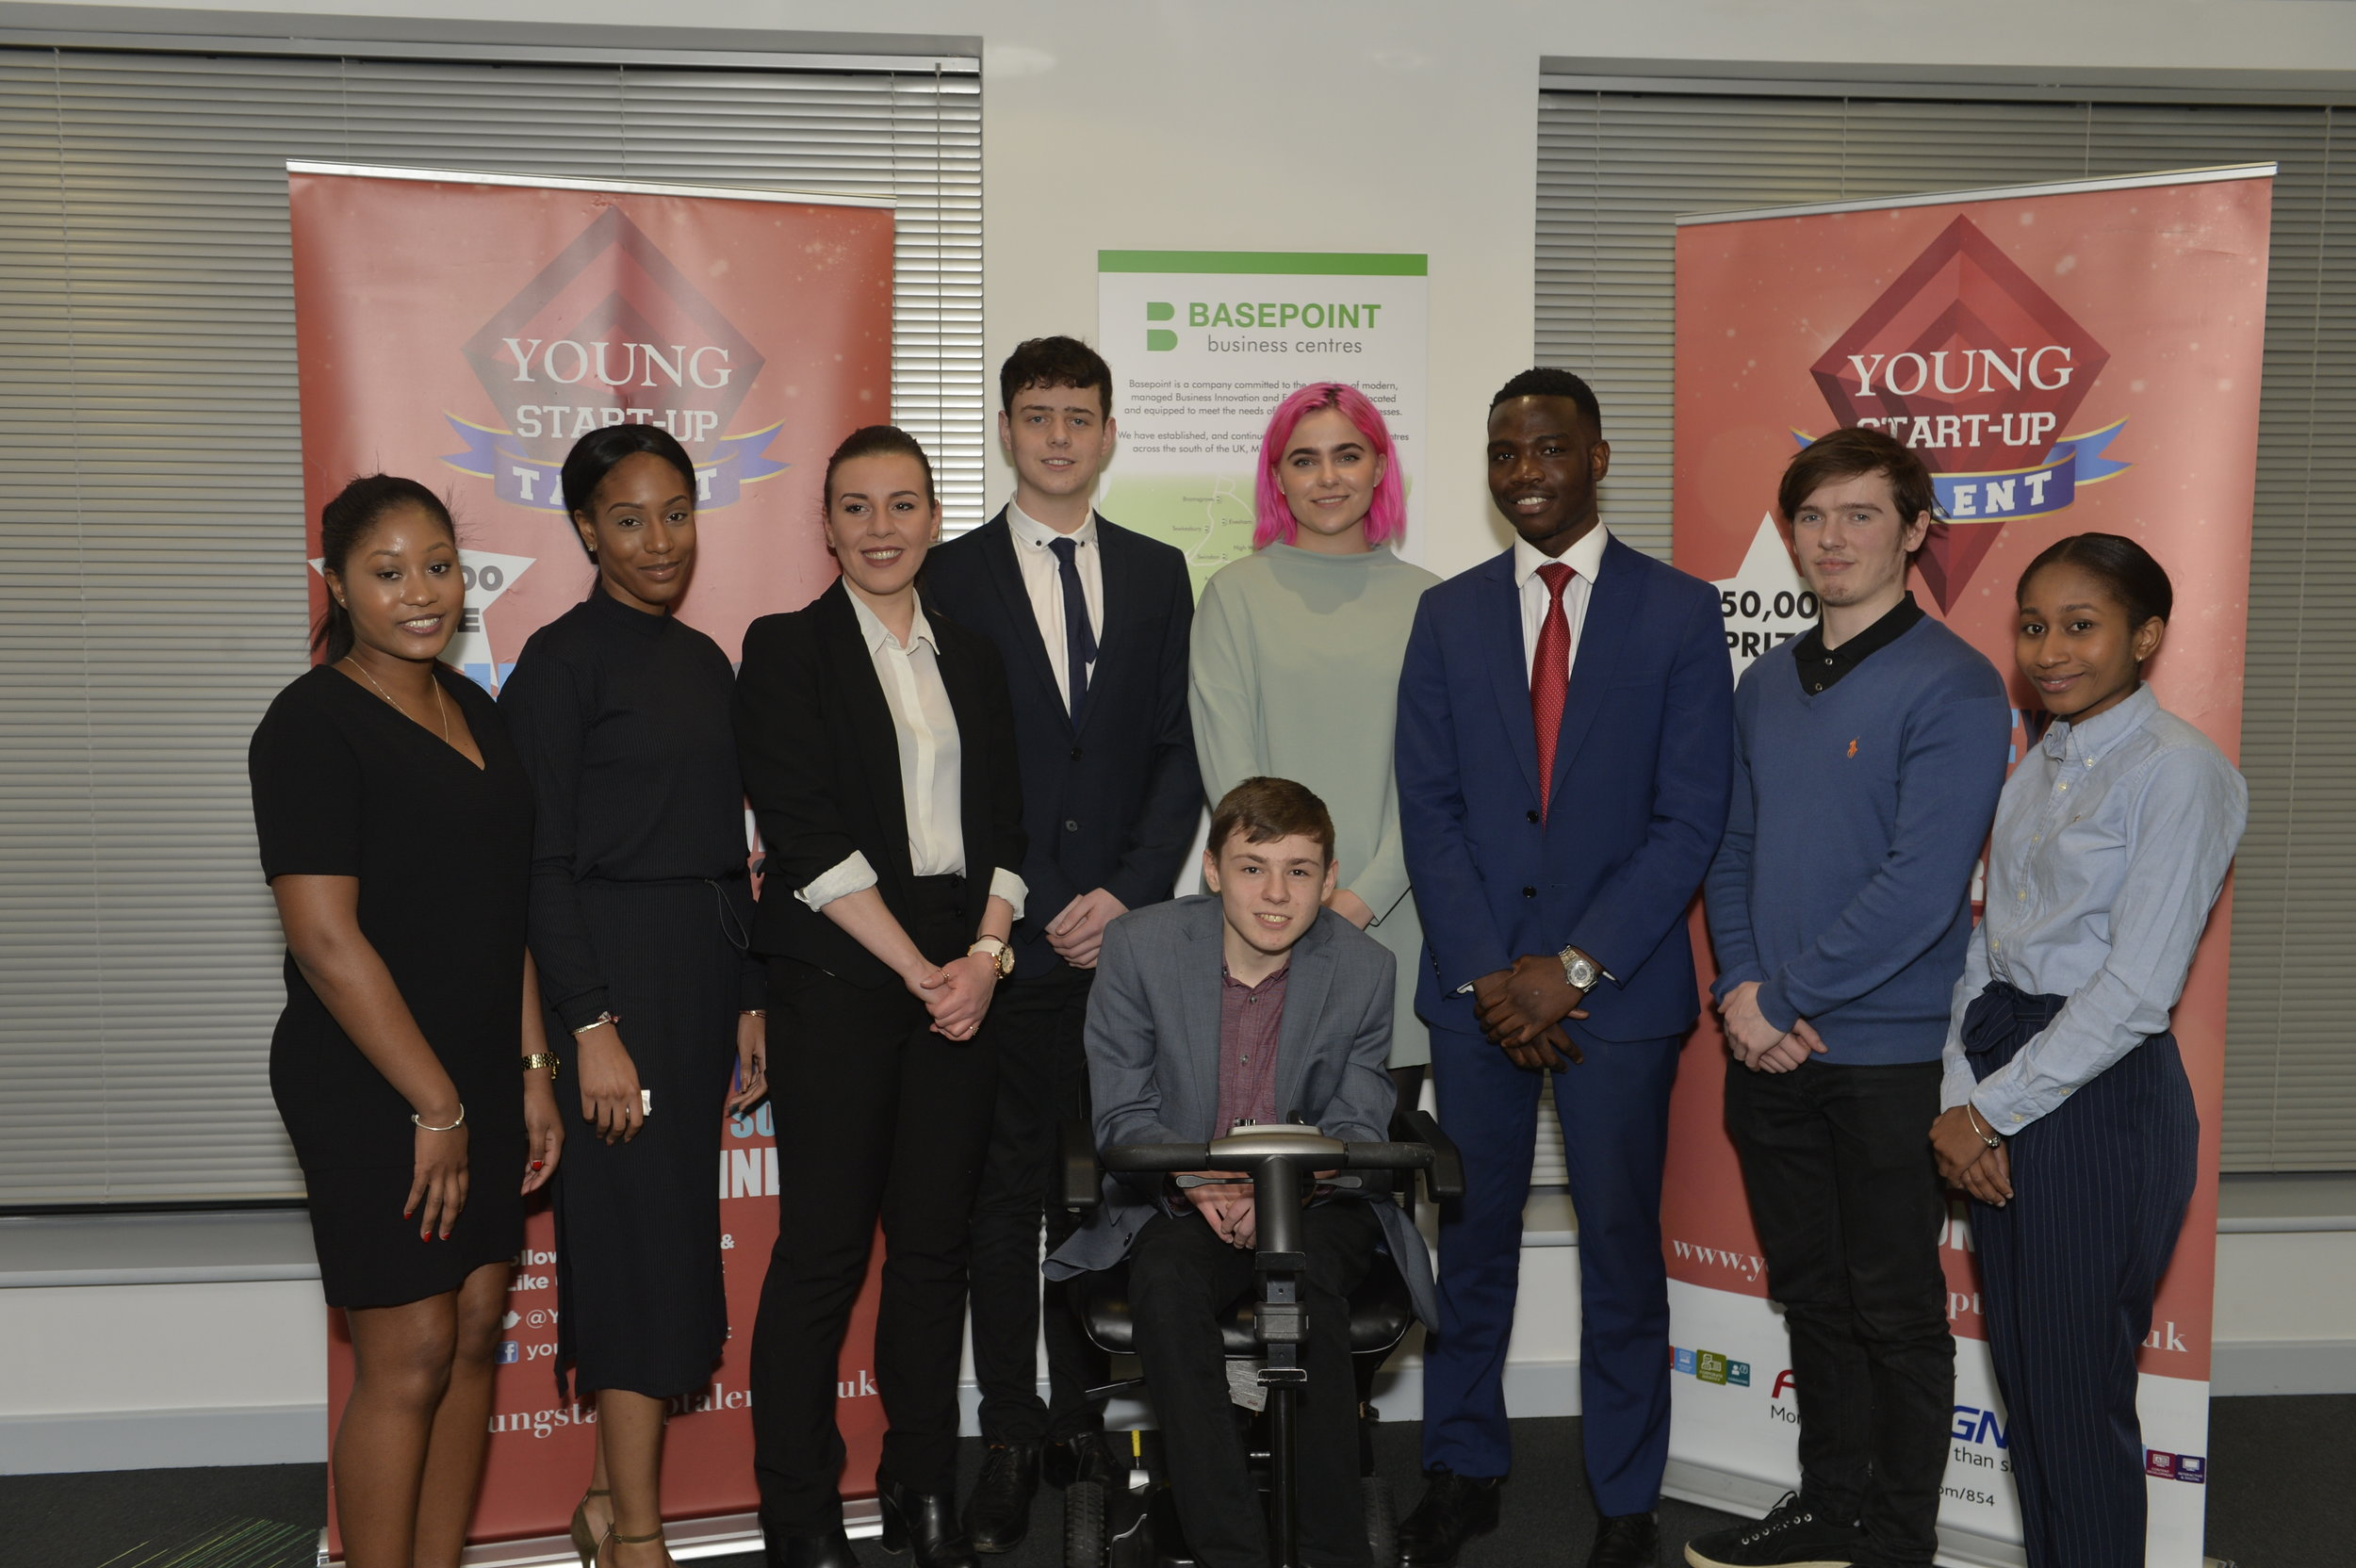 Young Start-up Talent South East 2018 finalists